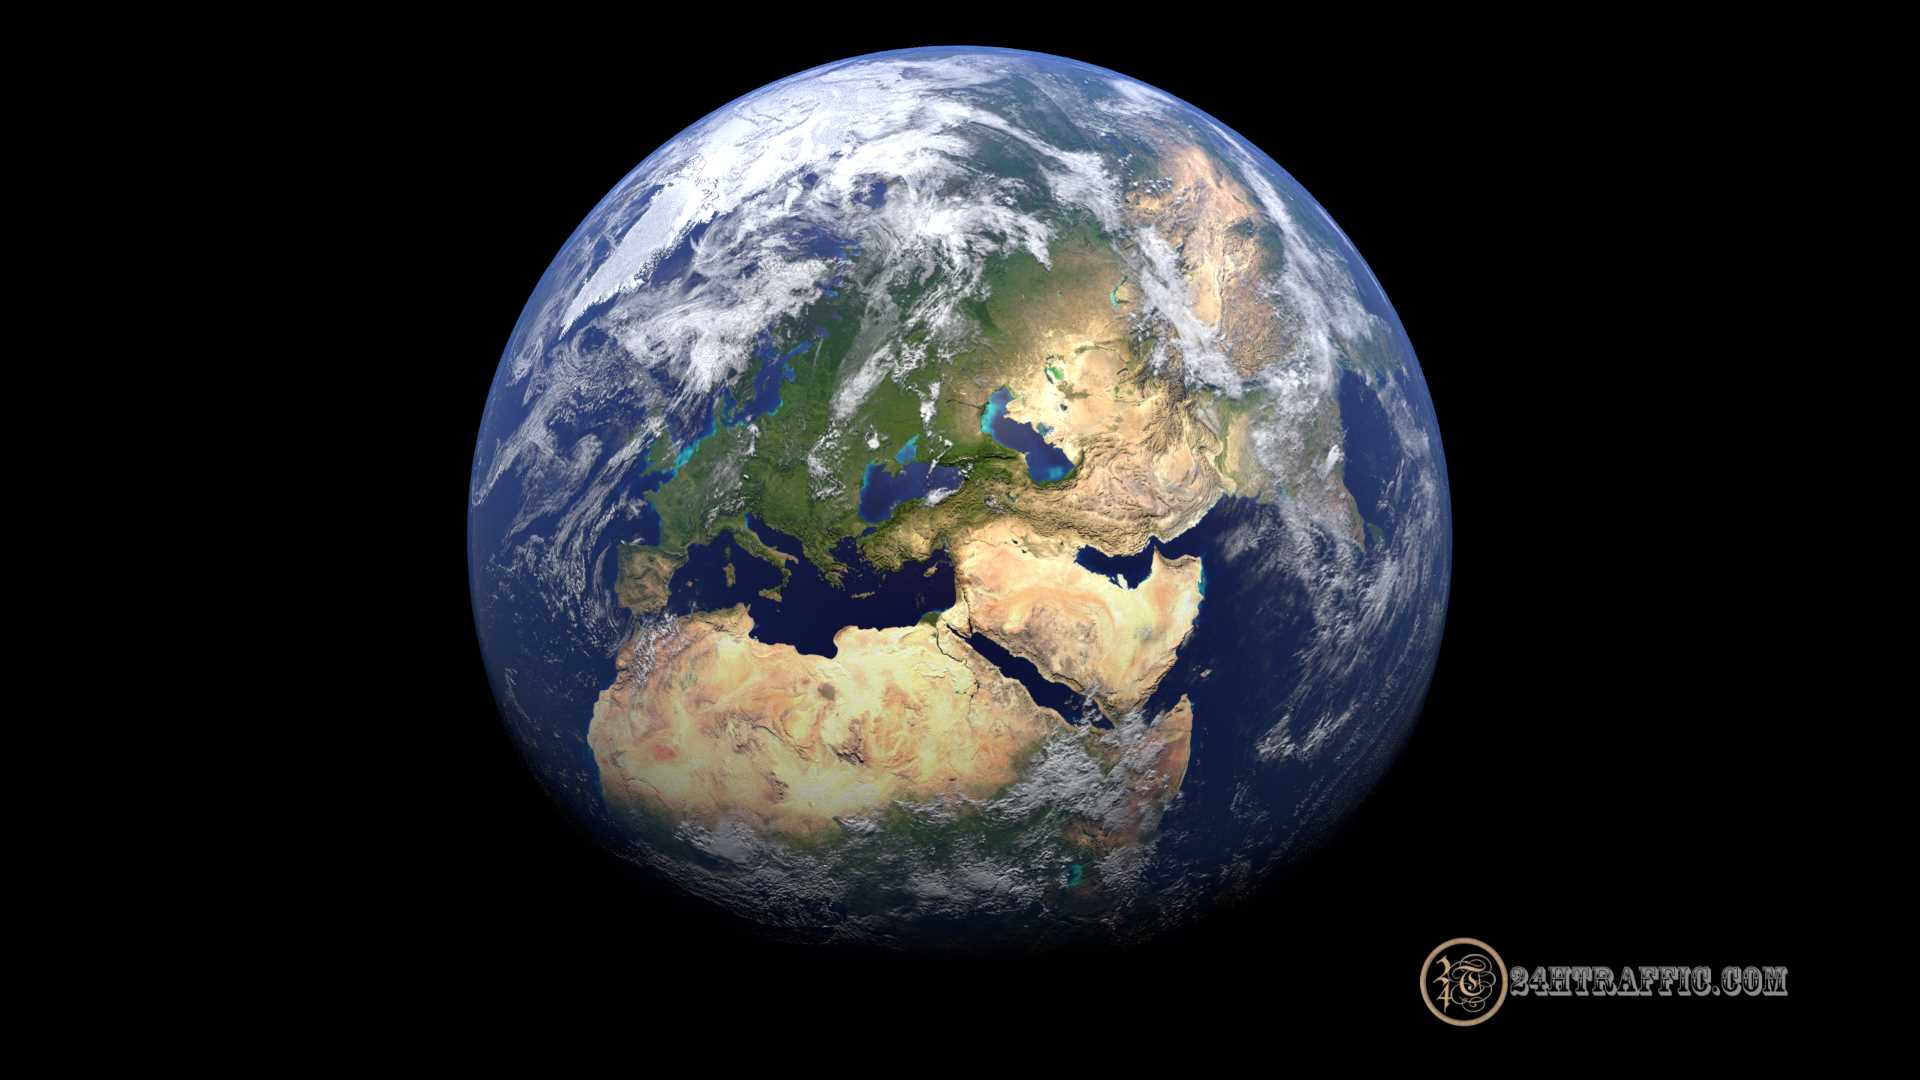 3dSkyHost: 3D model Earth free download